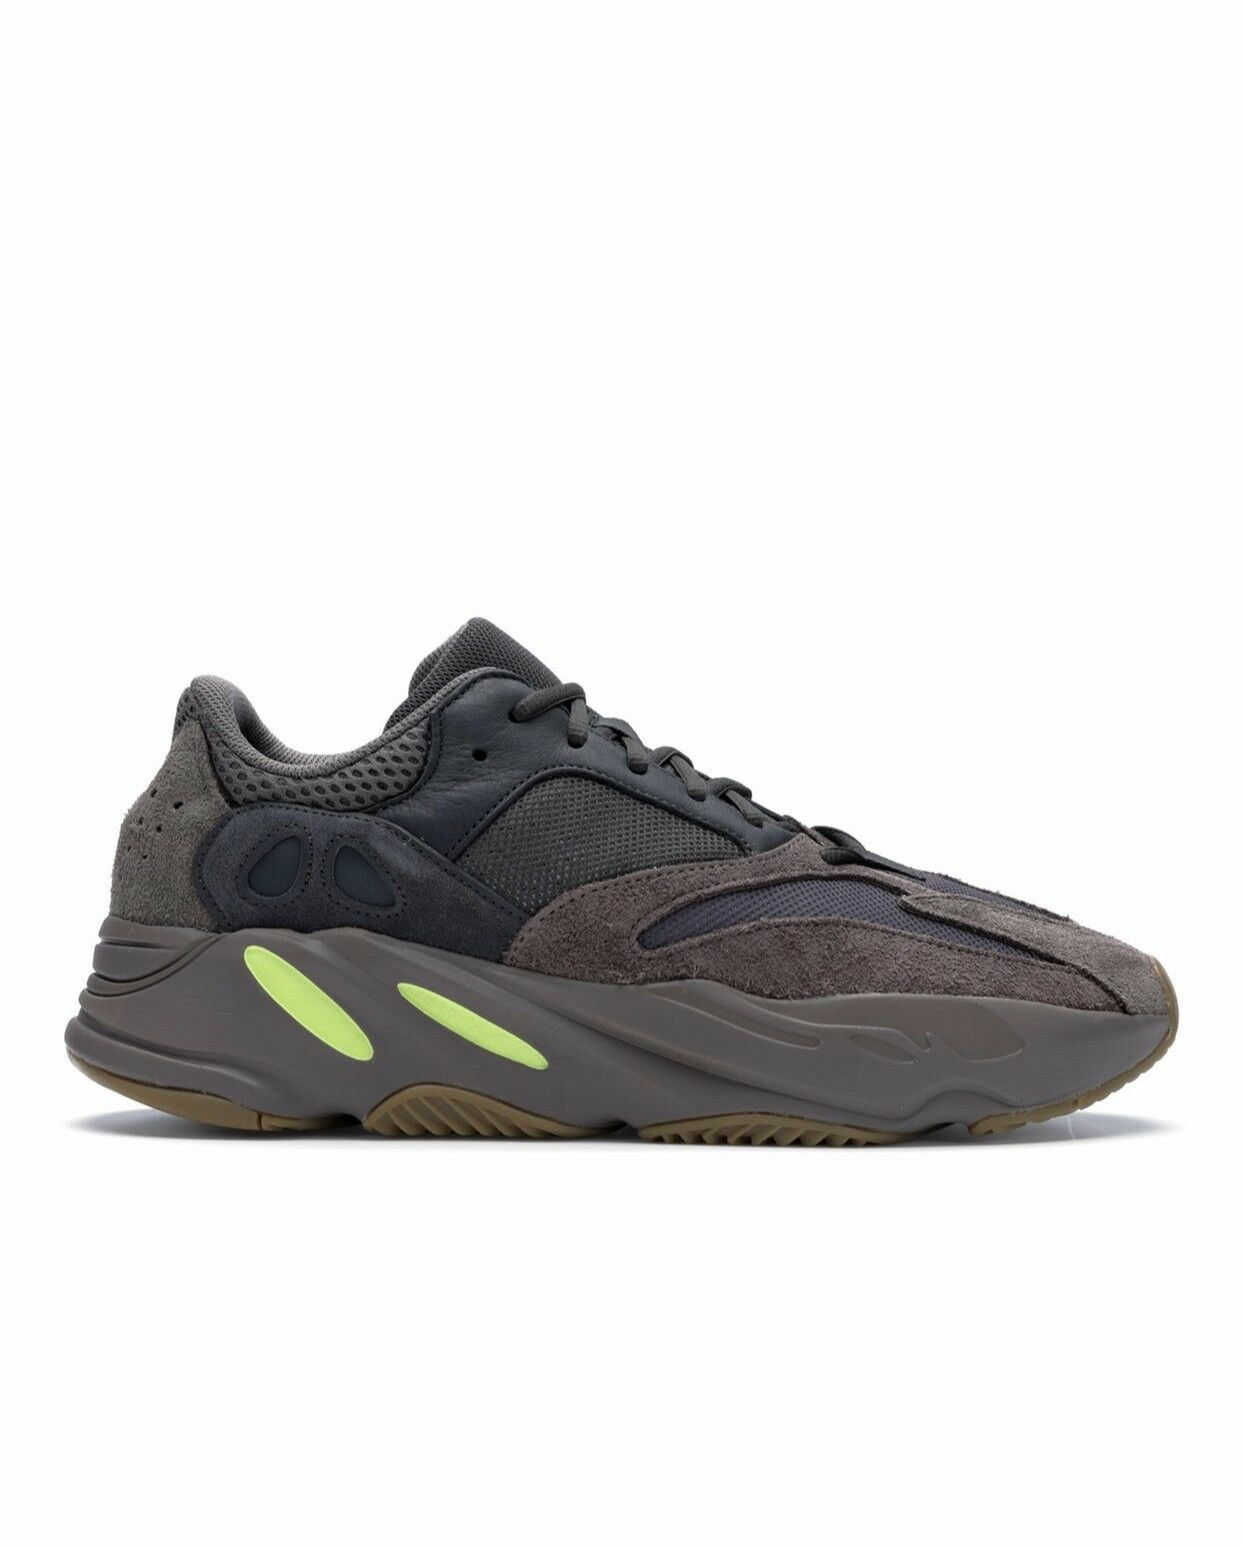 Yeezy Boost 700 Mauve Mens Size 7-12 100% Authentic in the box